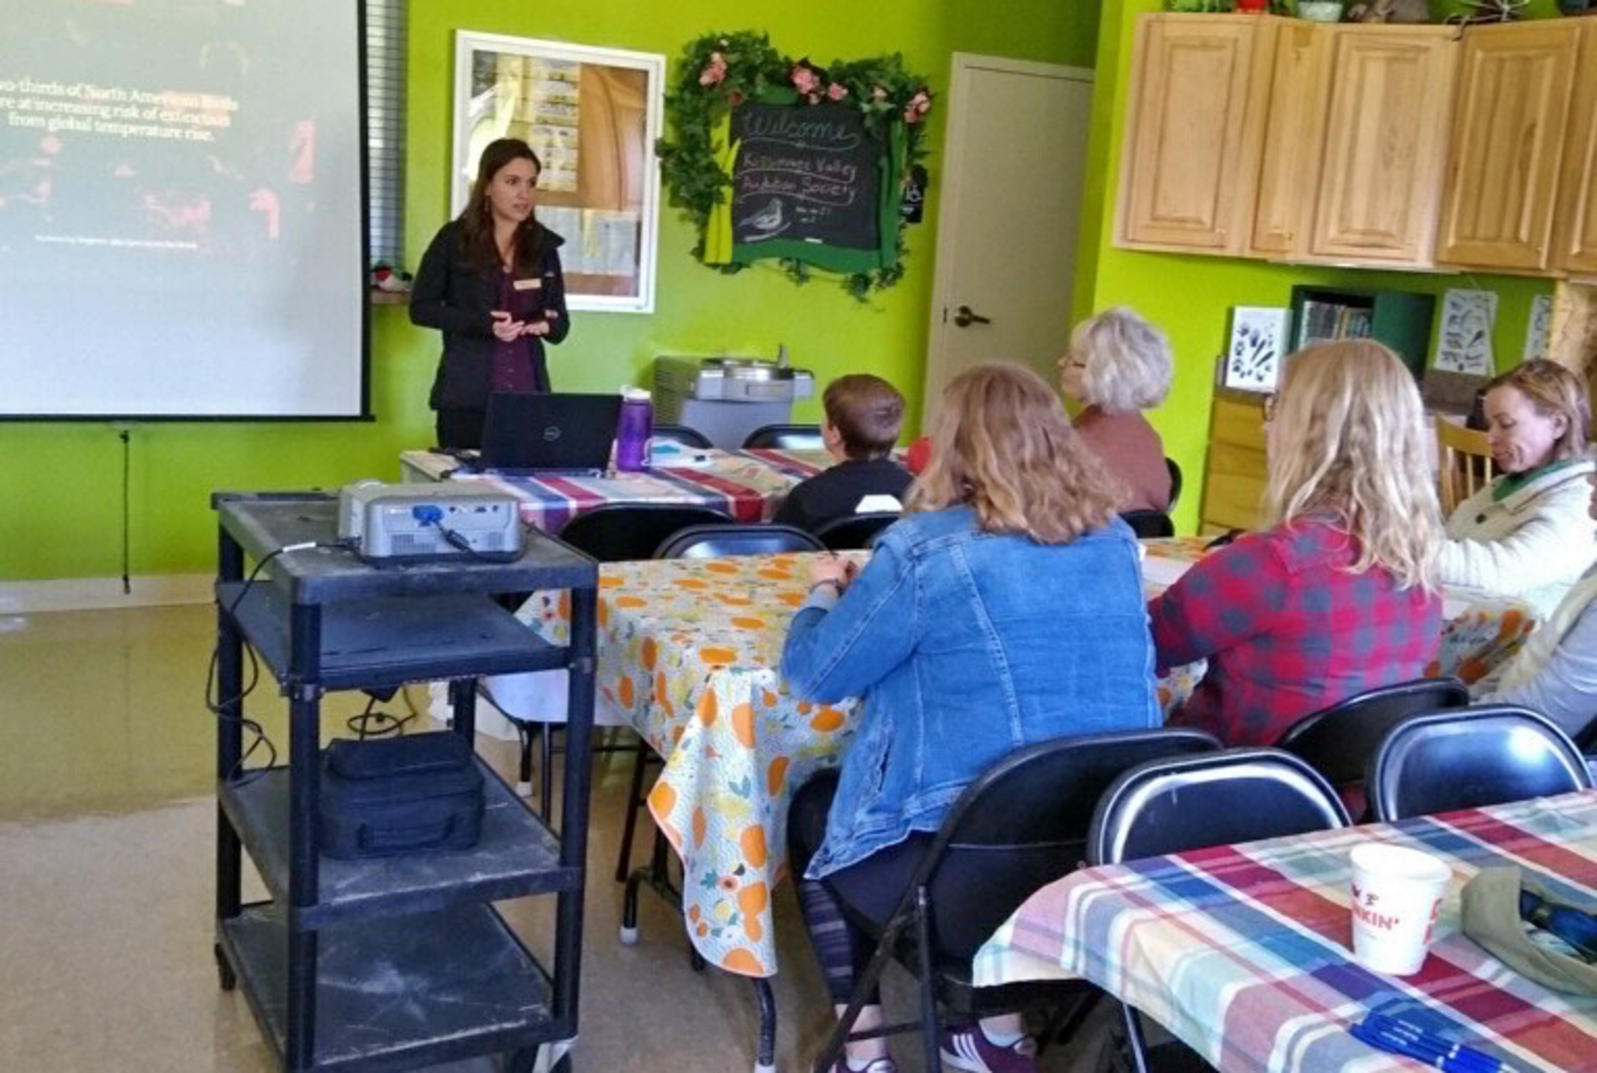 An Audubon chapter receives a climate change advocacy training.